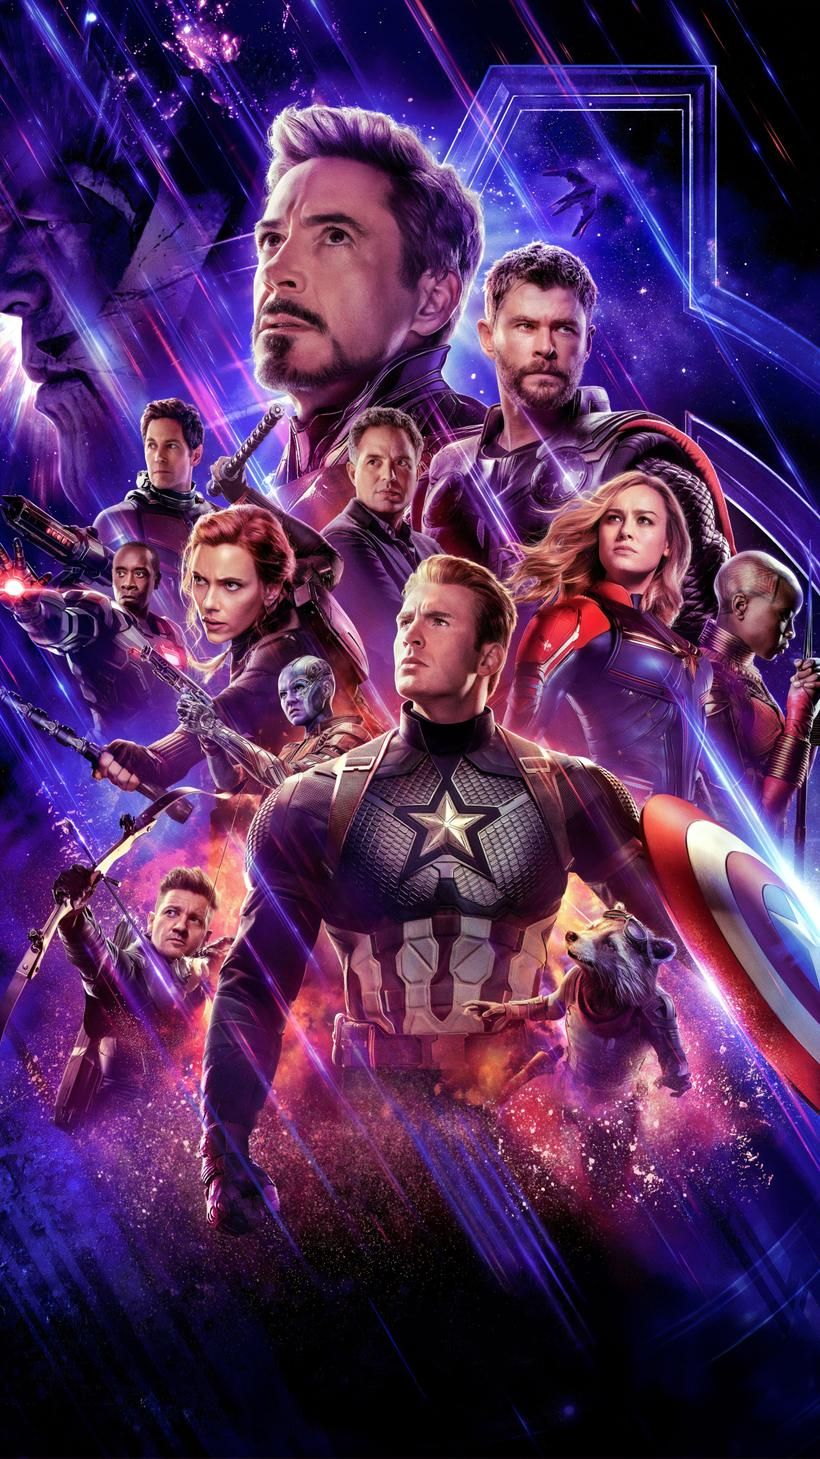 Avengers Endgame (2019) Phone Wallpaper Filmy marvela